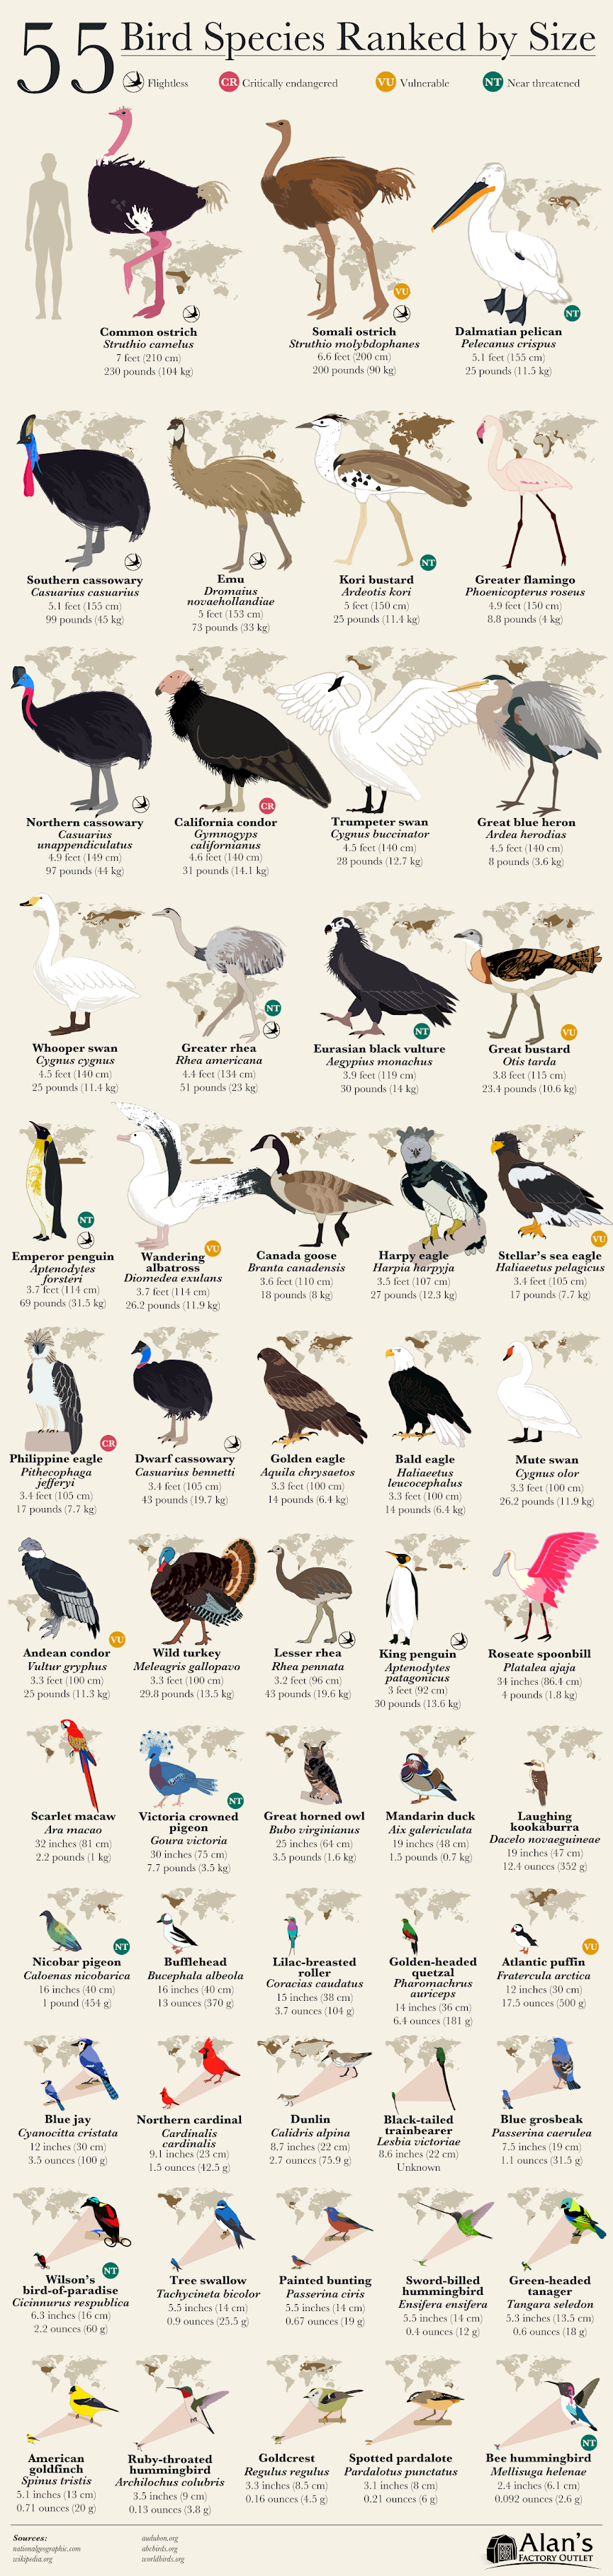 55 Bird Species Ranked by Size #infographic #Animals #infographics #Birds #Infographic #Bird